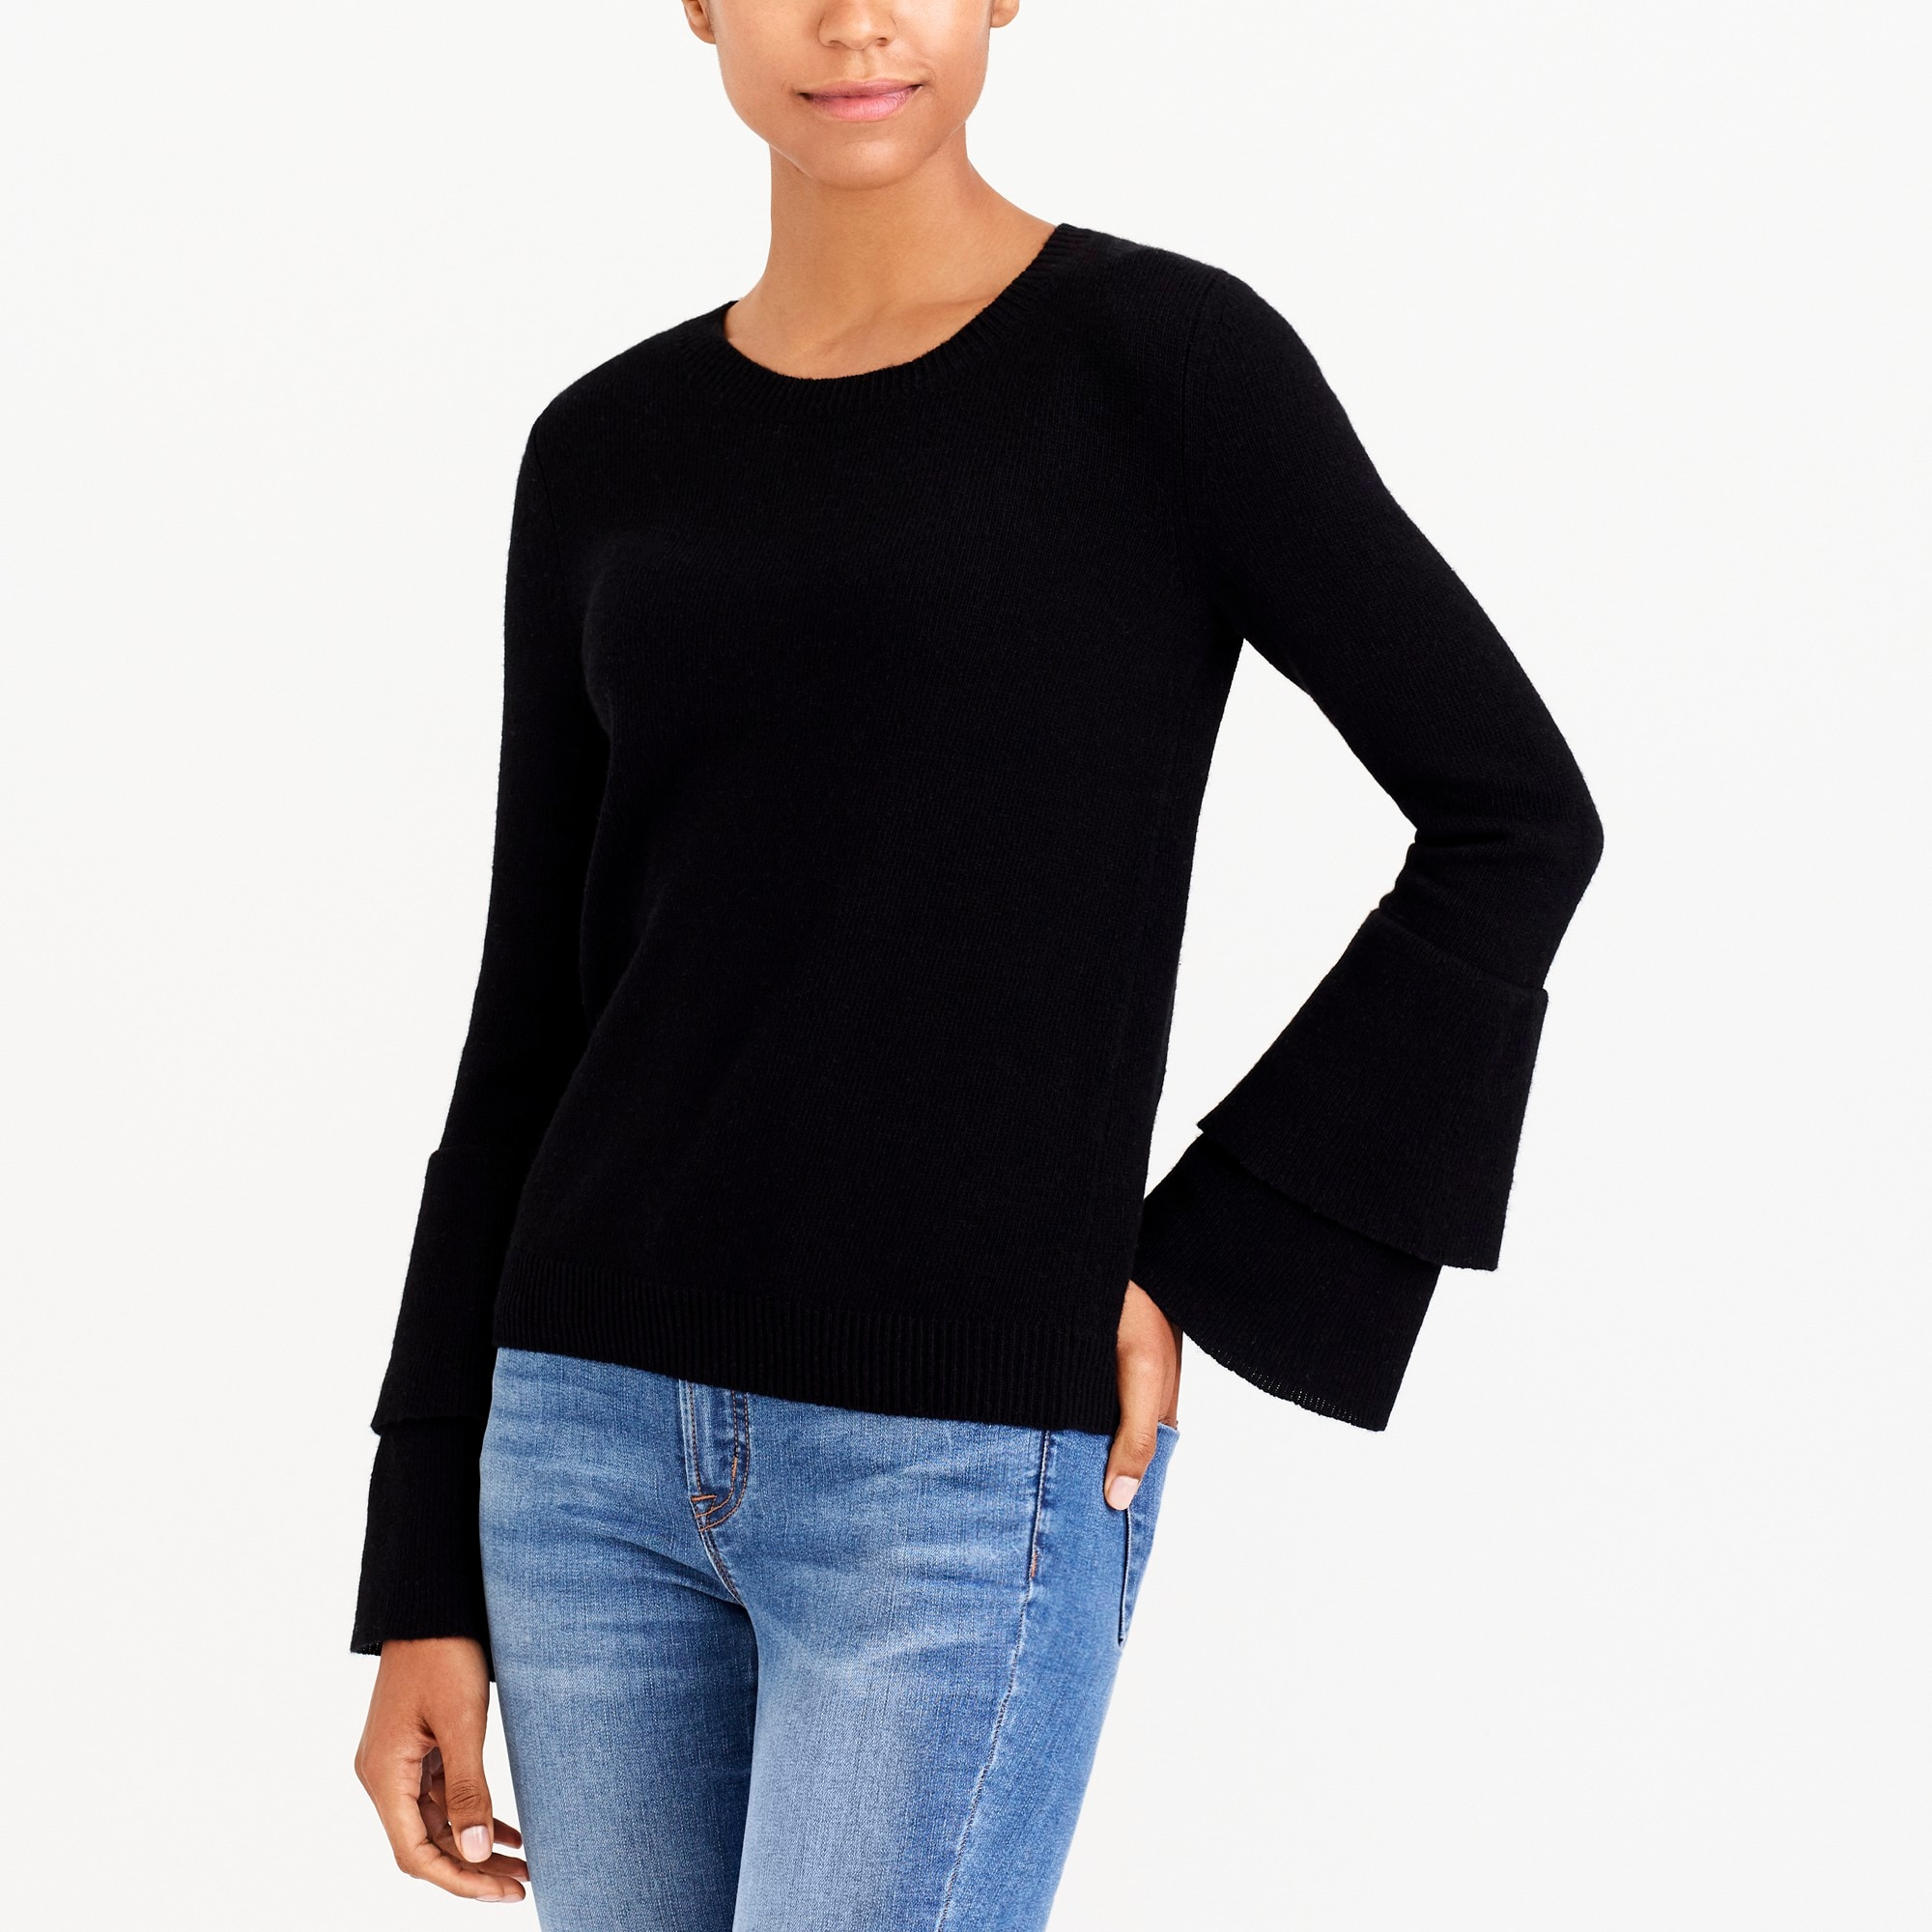 Image 1 for Ruffle-sleeve pullover sweater